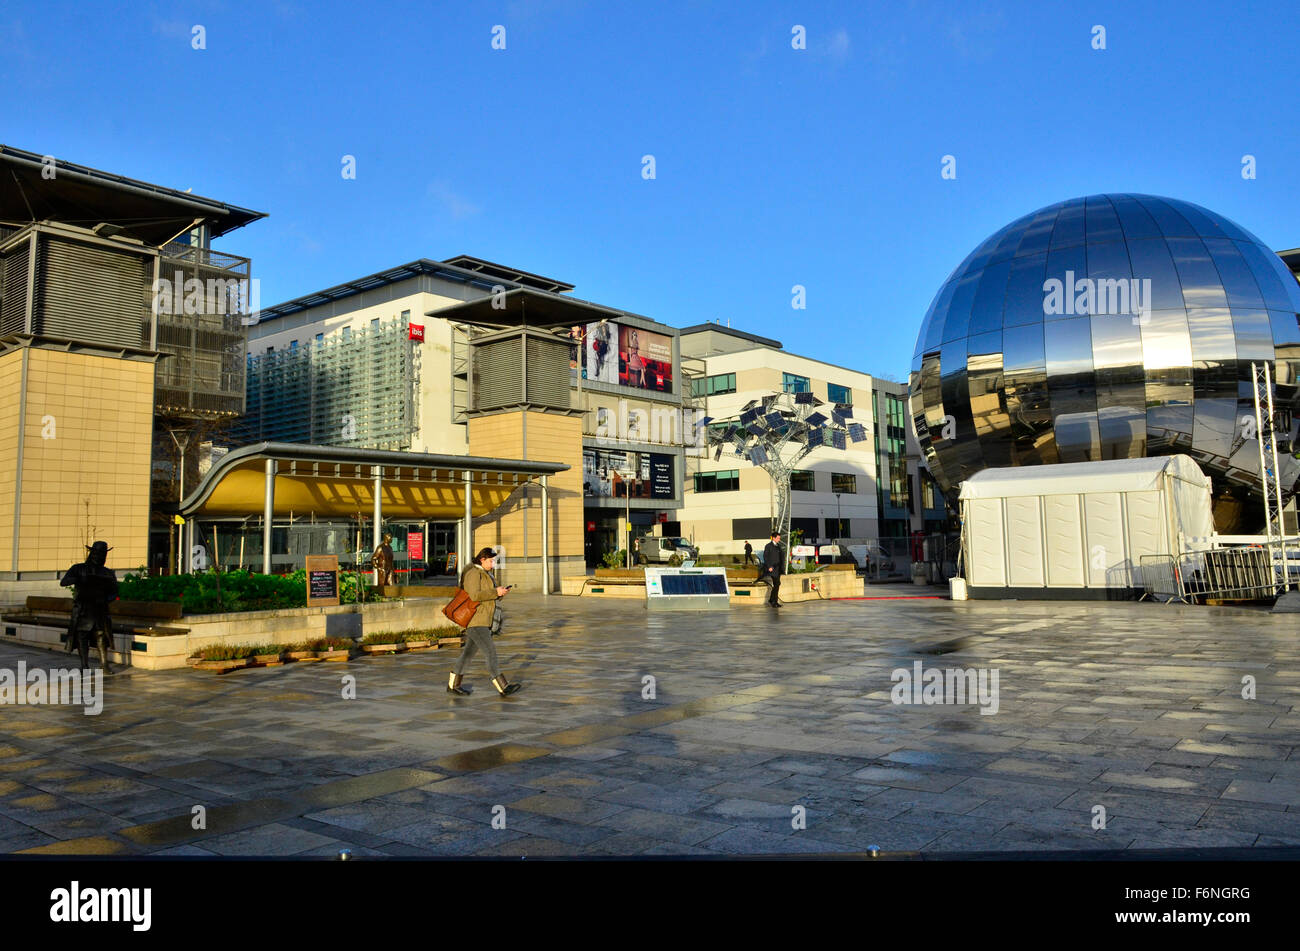 Bristol, UK. 18th Nov, 2015. UK Weather, Bristol Millennium Square on a cold and sunny morning. Crisp and clear - Stock Image